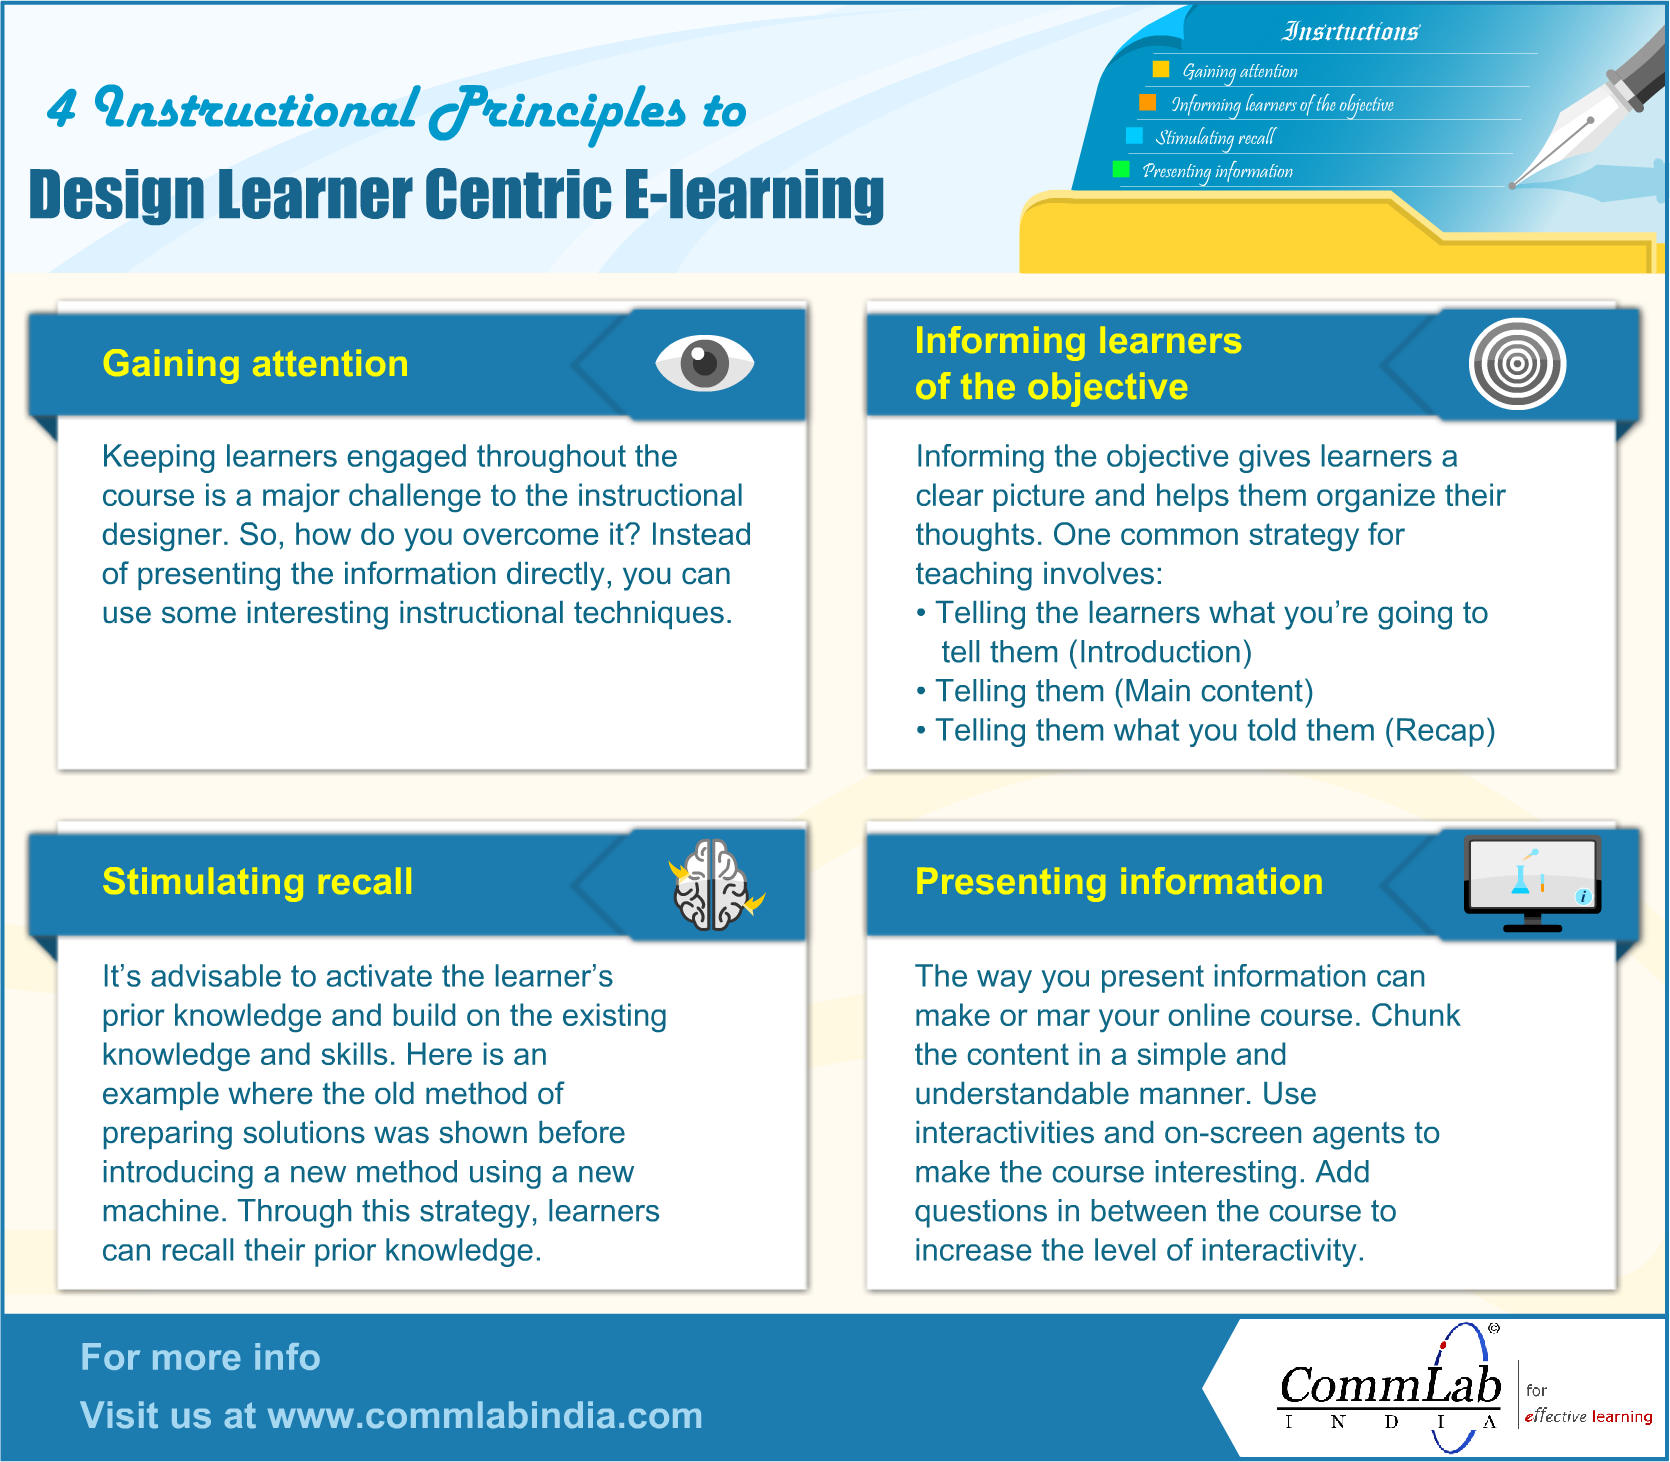 4 Principles to Design Learner Centric E-Learning Courses – An Infographic